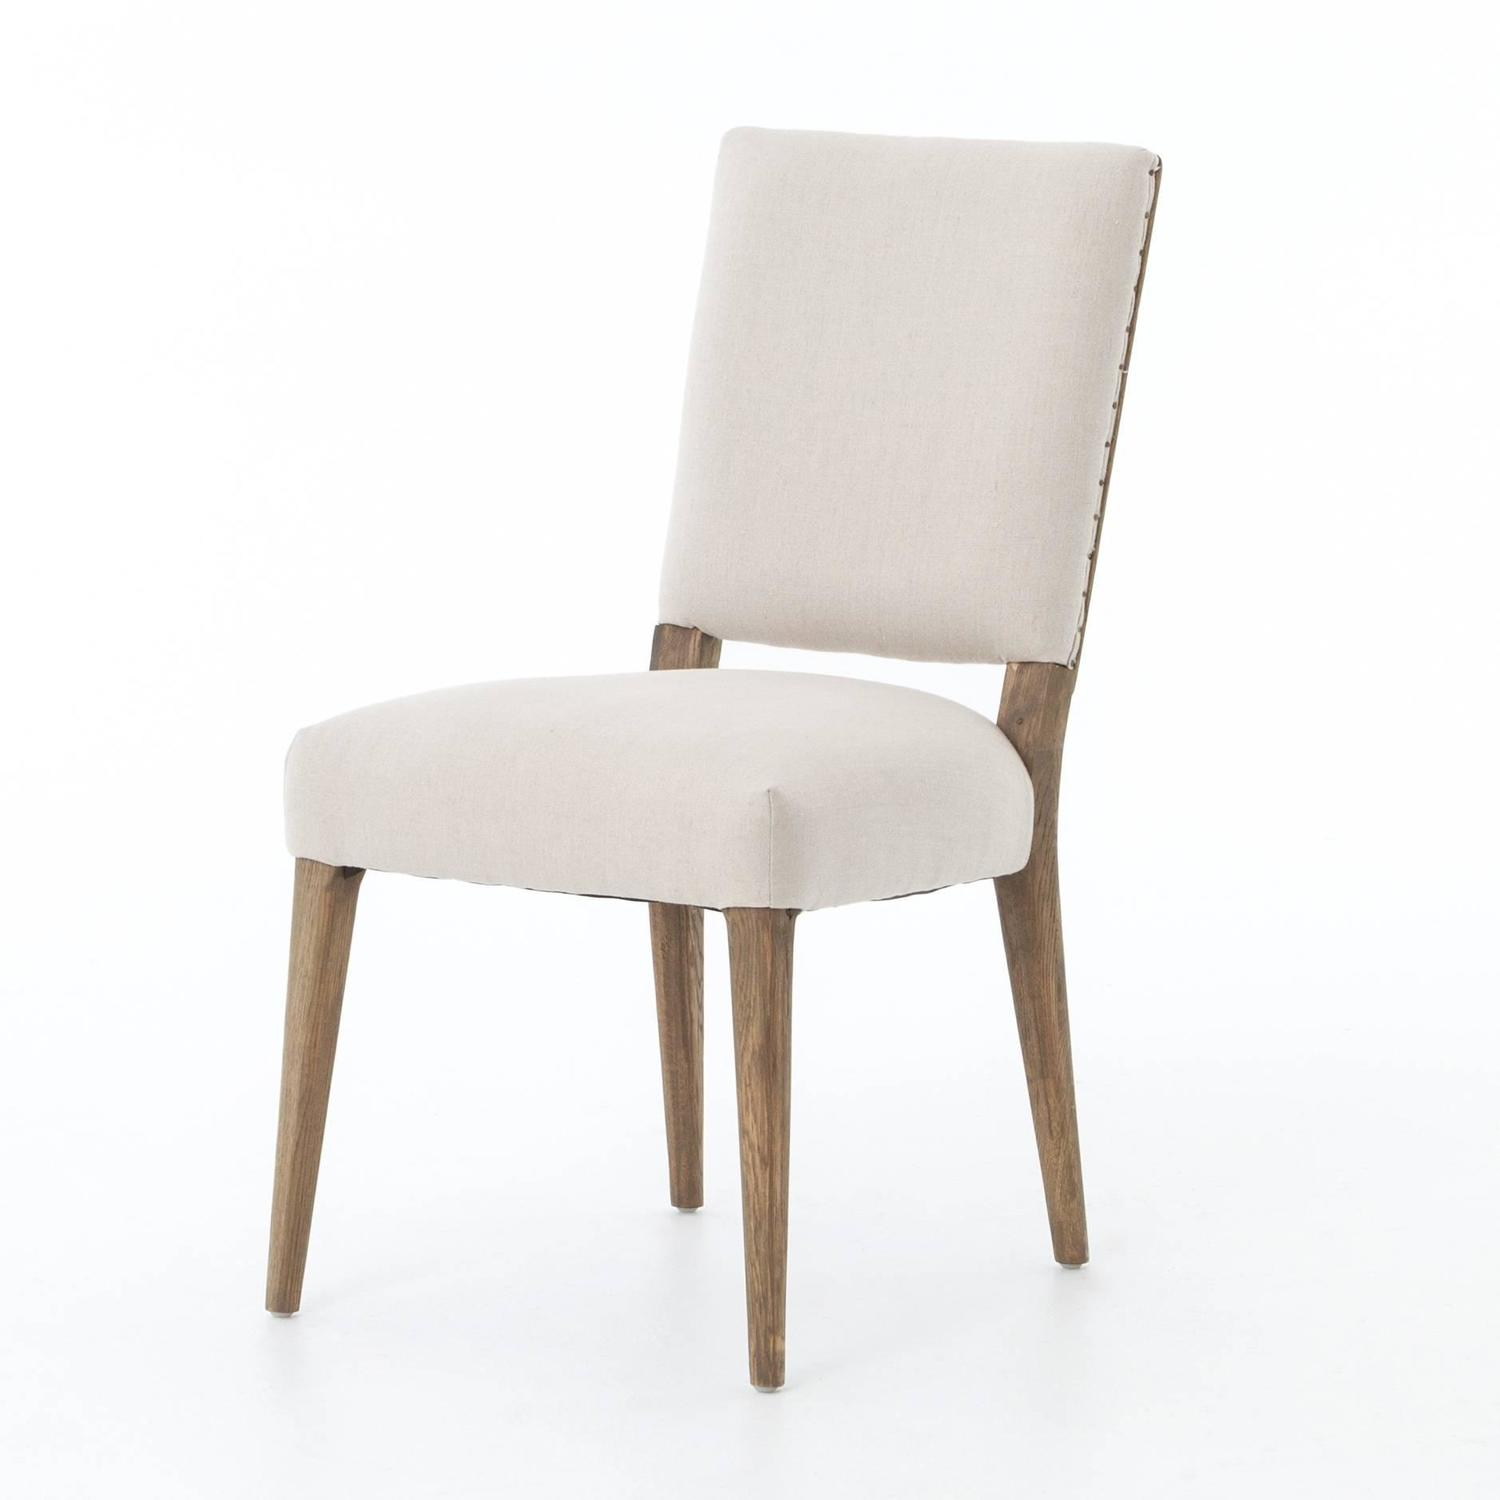 Dining Chairs For Sale: Upholstered Dining Chair For Sale At 1stdibs